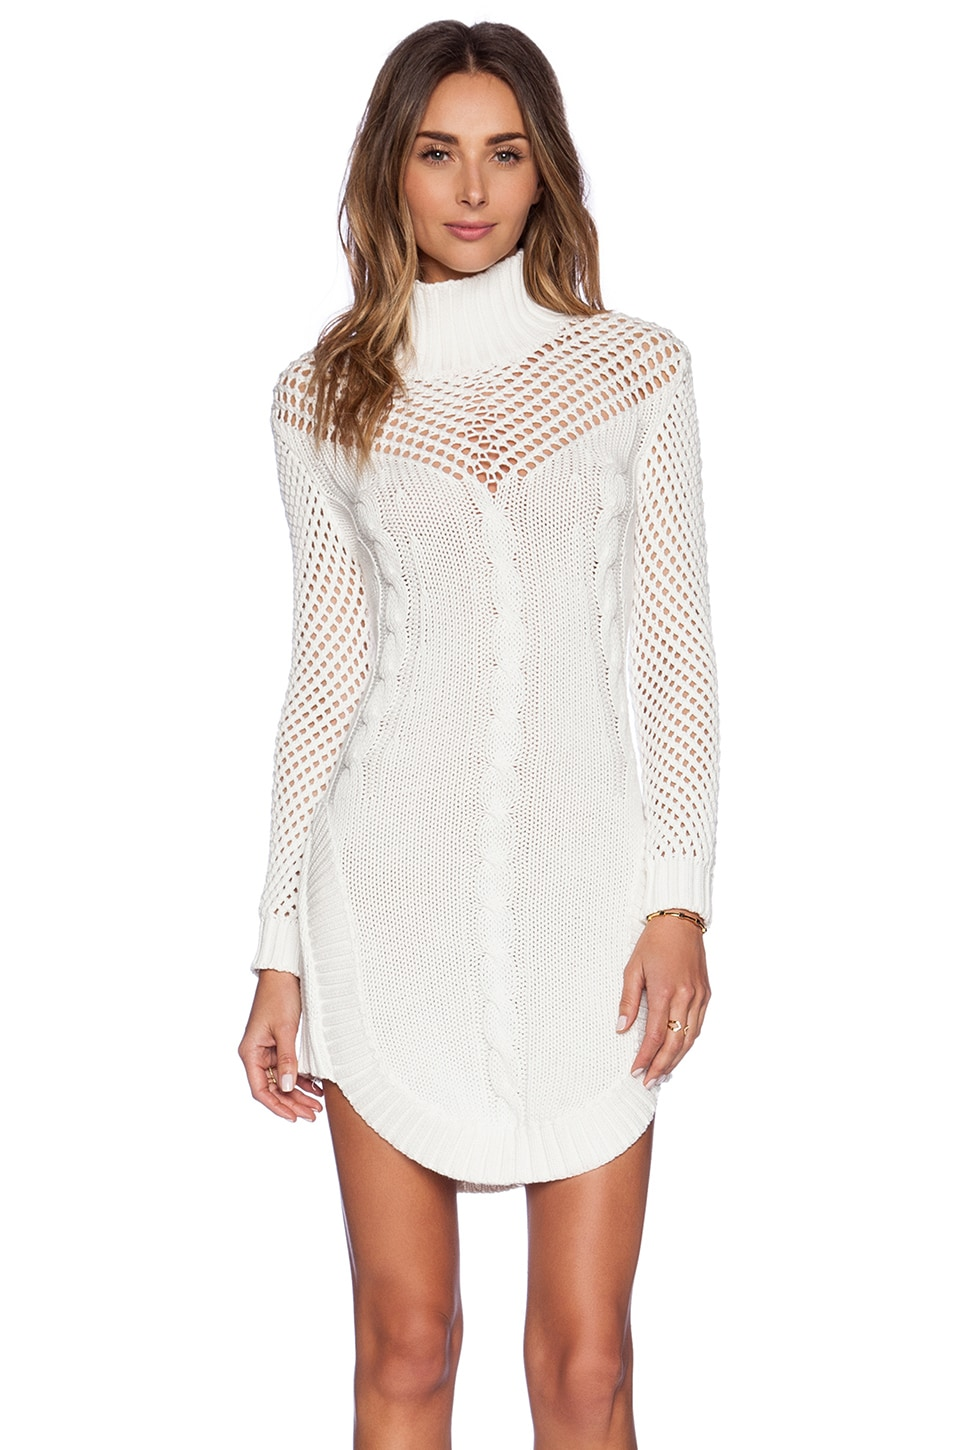 bless'ed are the meek Walkway Dress in Ivory